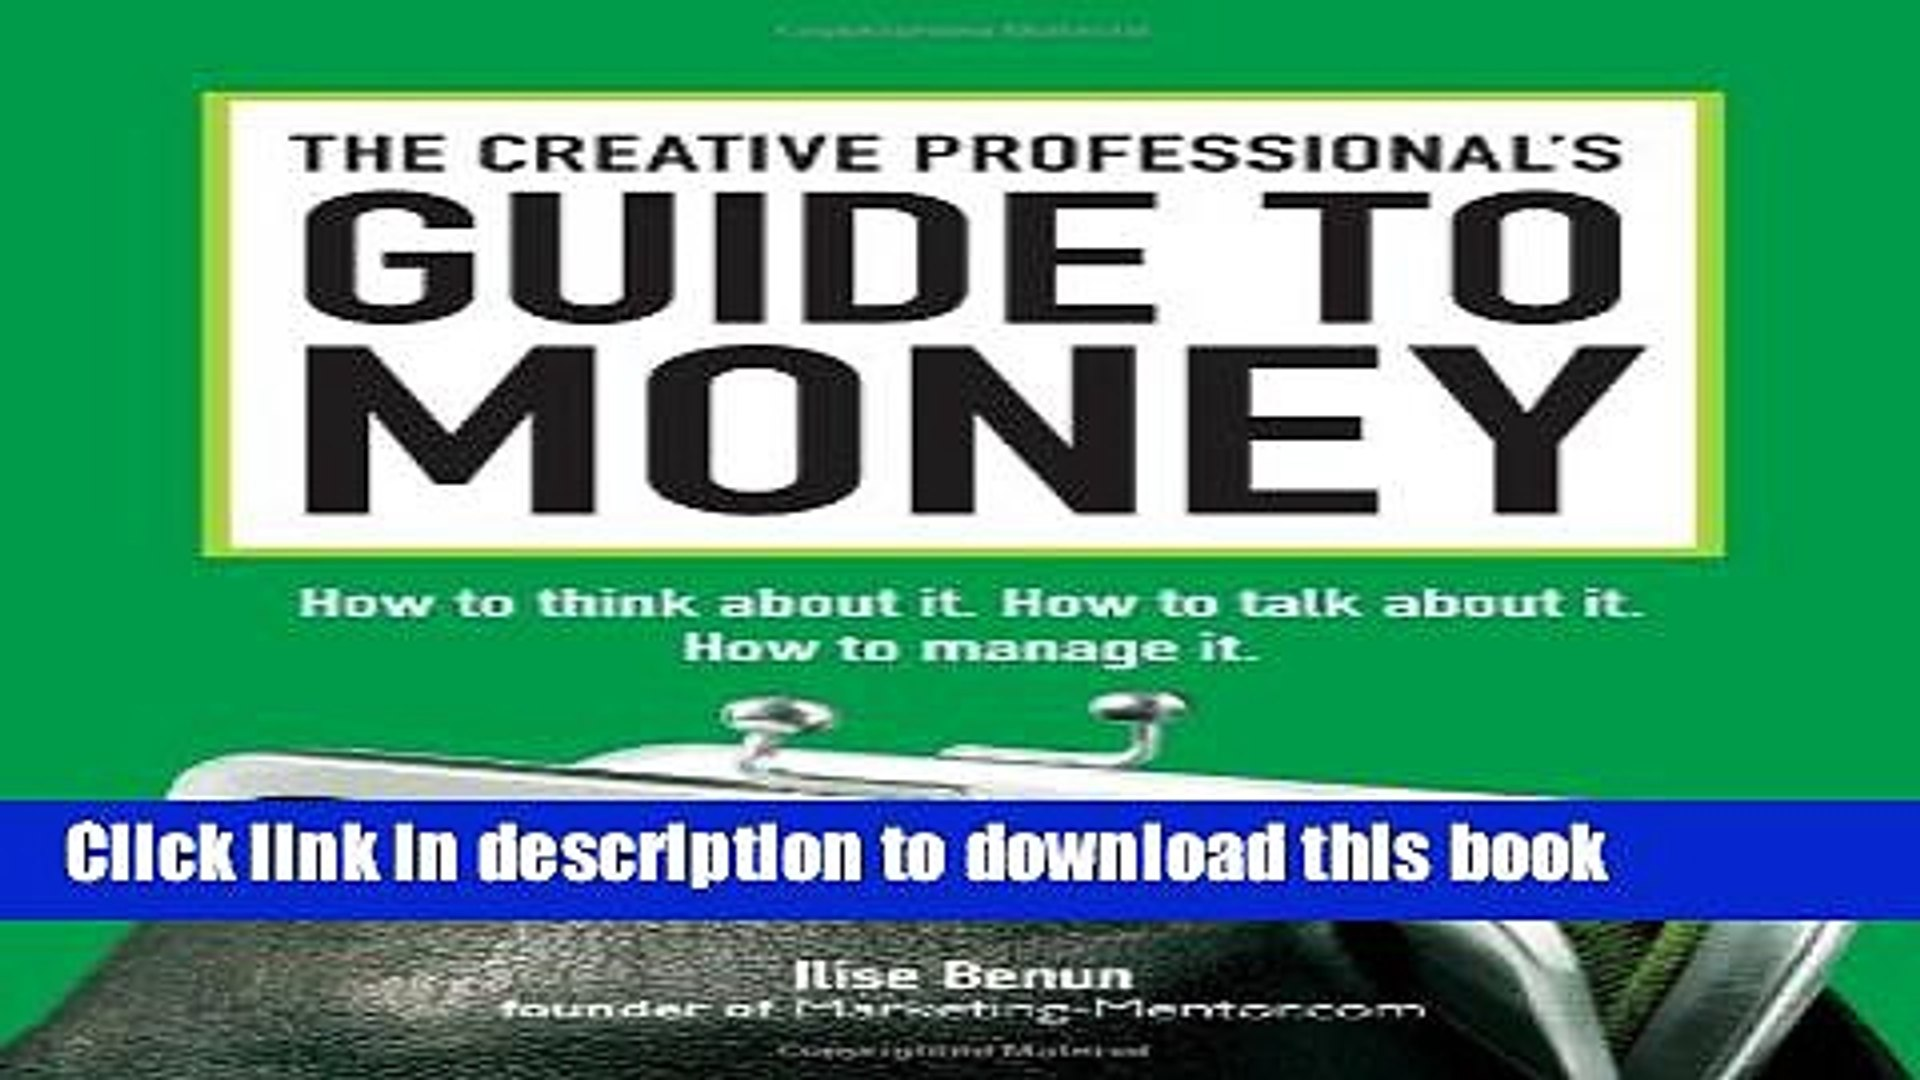 Books The Creative Professional s Guide to Money: How to Think About It, How to Talk About it, How